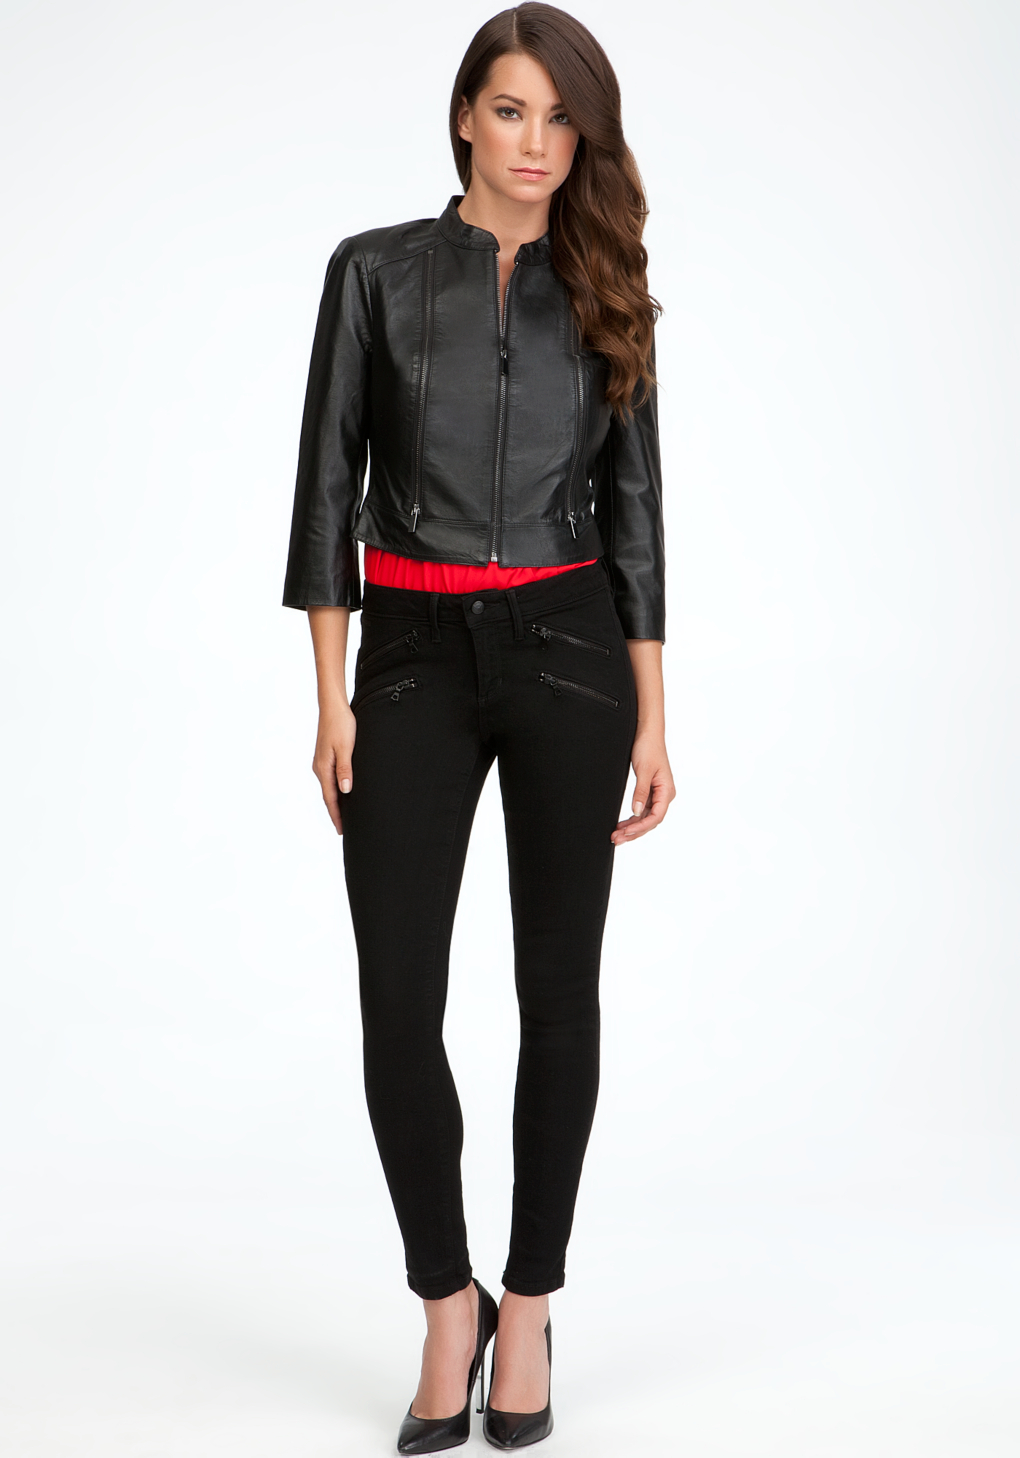 Bebe Cropped Leather Jacket In Black Lyst